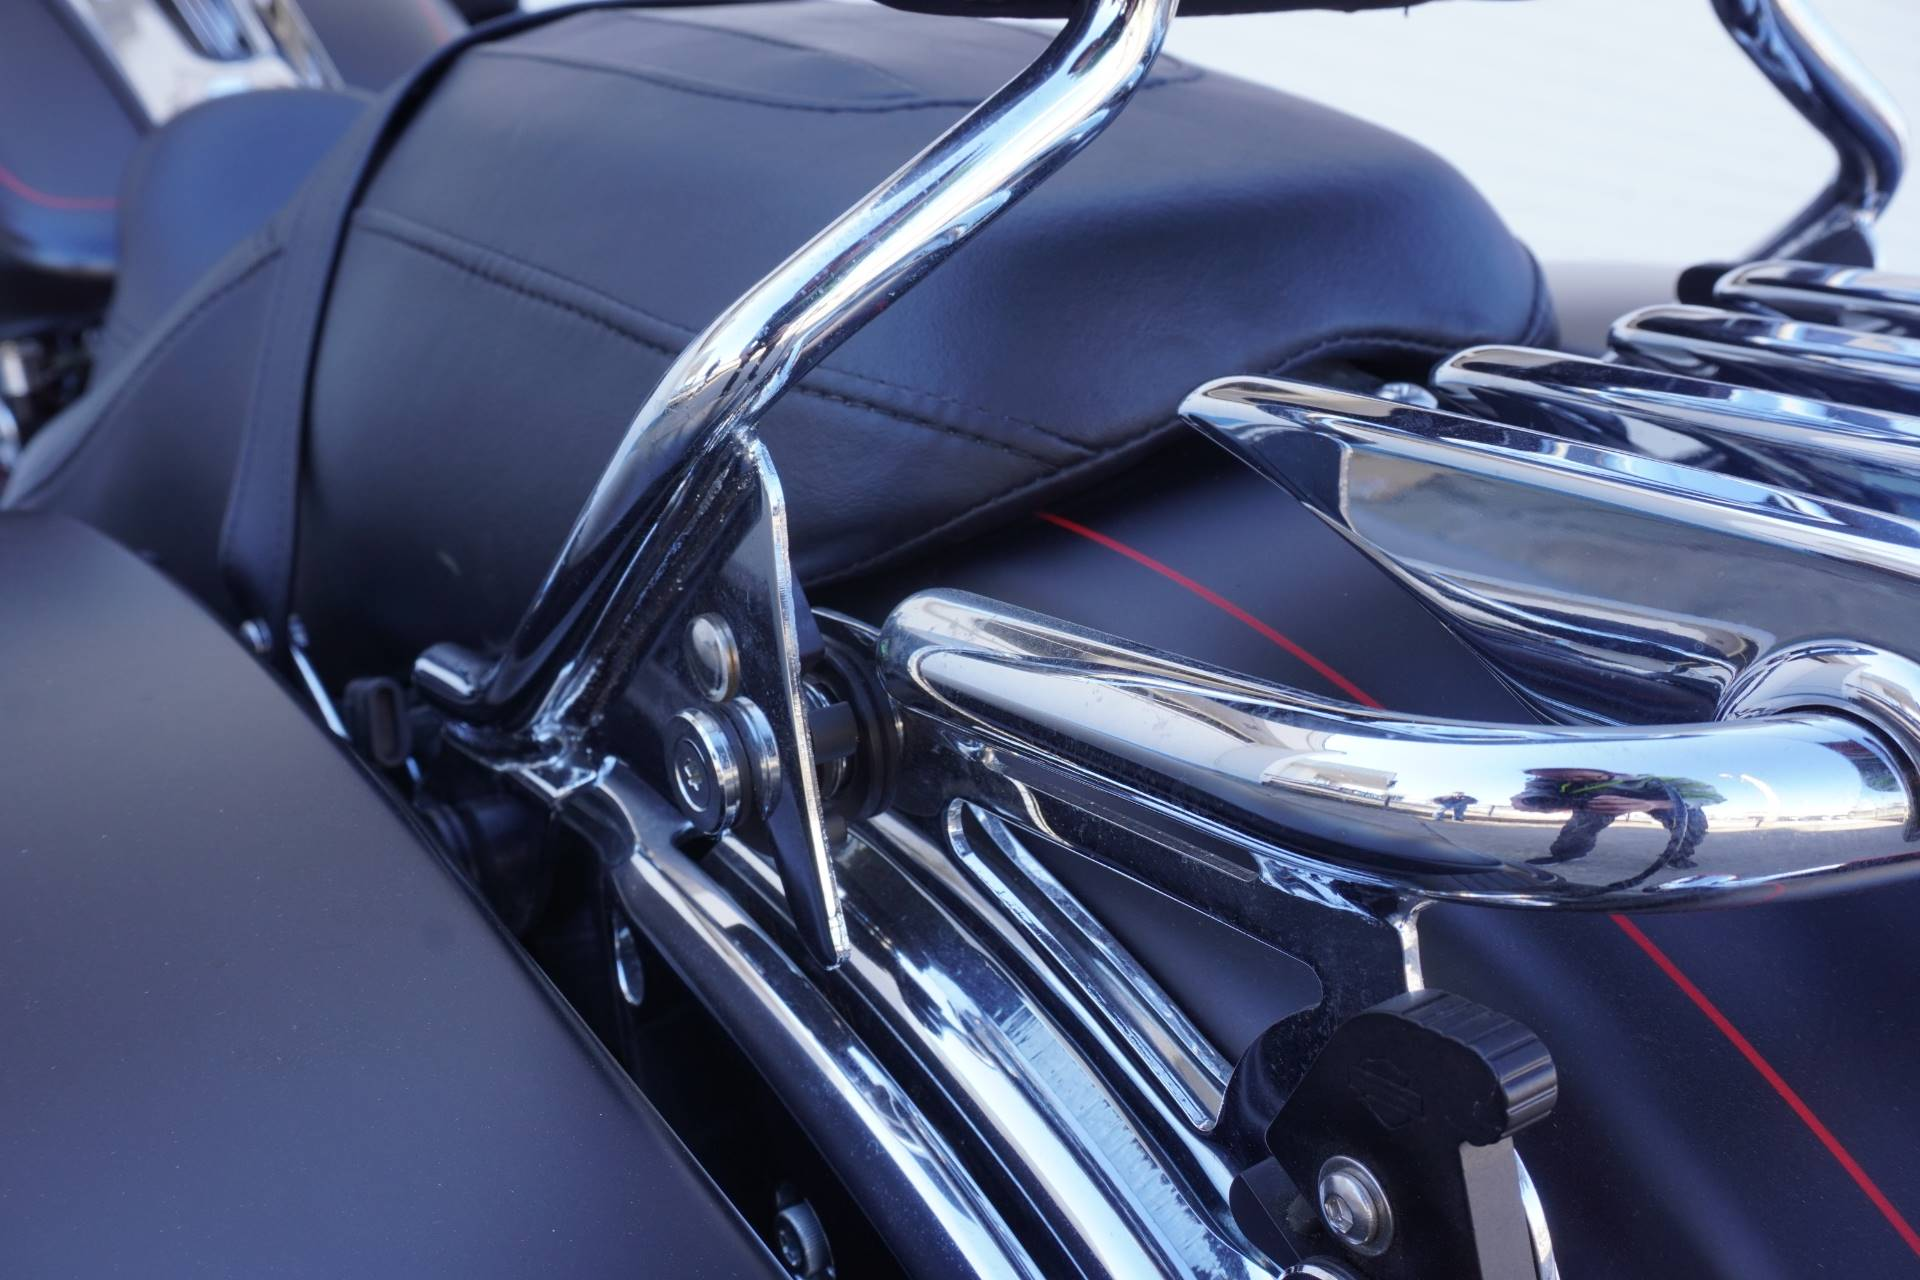 2015 Harley-Davidson Road Glide® Special in Tulsa, Oklahoma - Photo 5